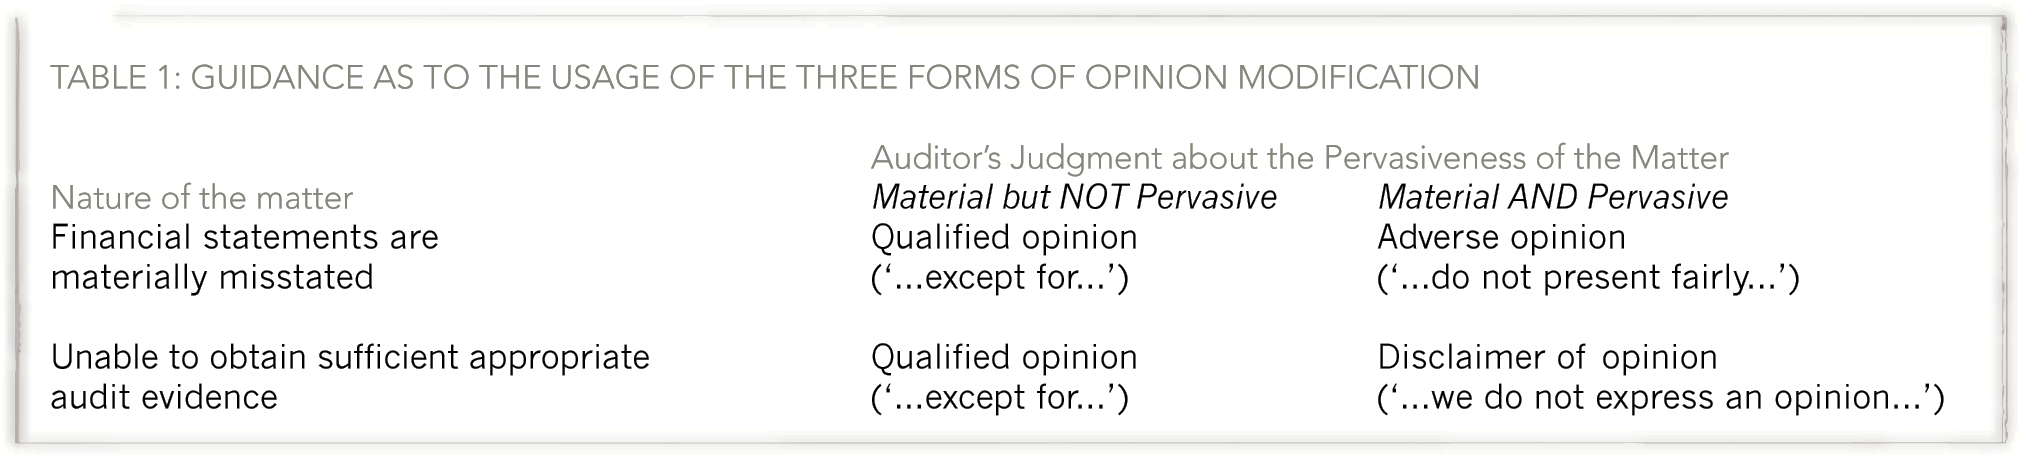 guidance as to the usage of the three forms of modification is provided by isa 705 modifications to the opinion in the independent auditors report